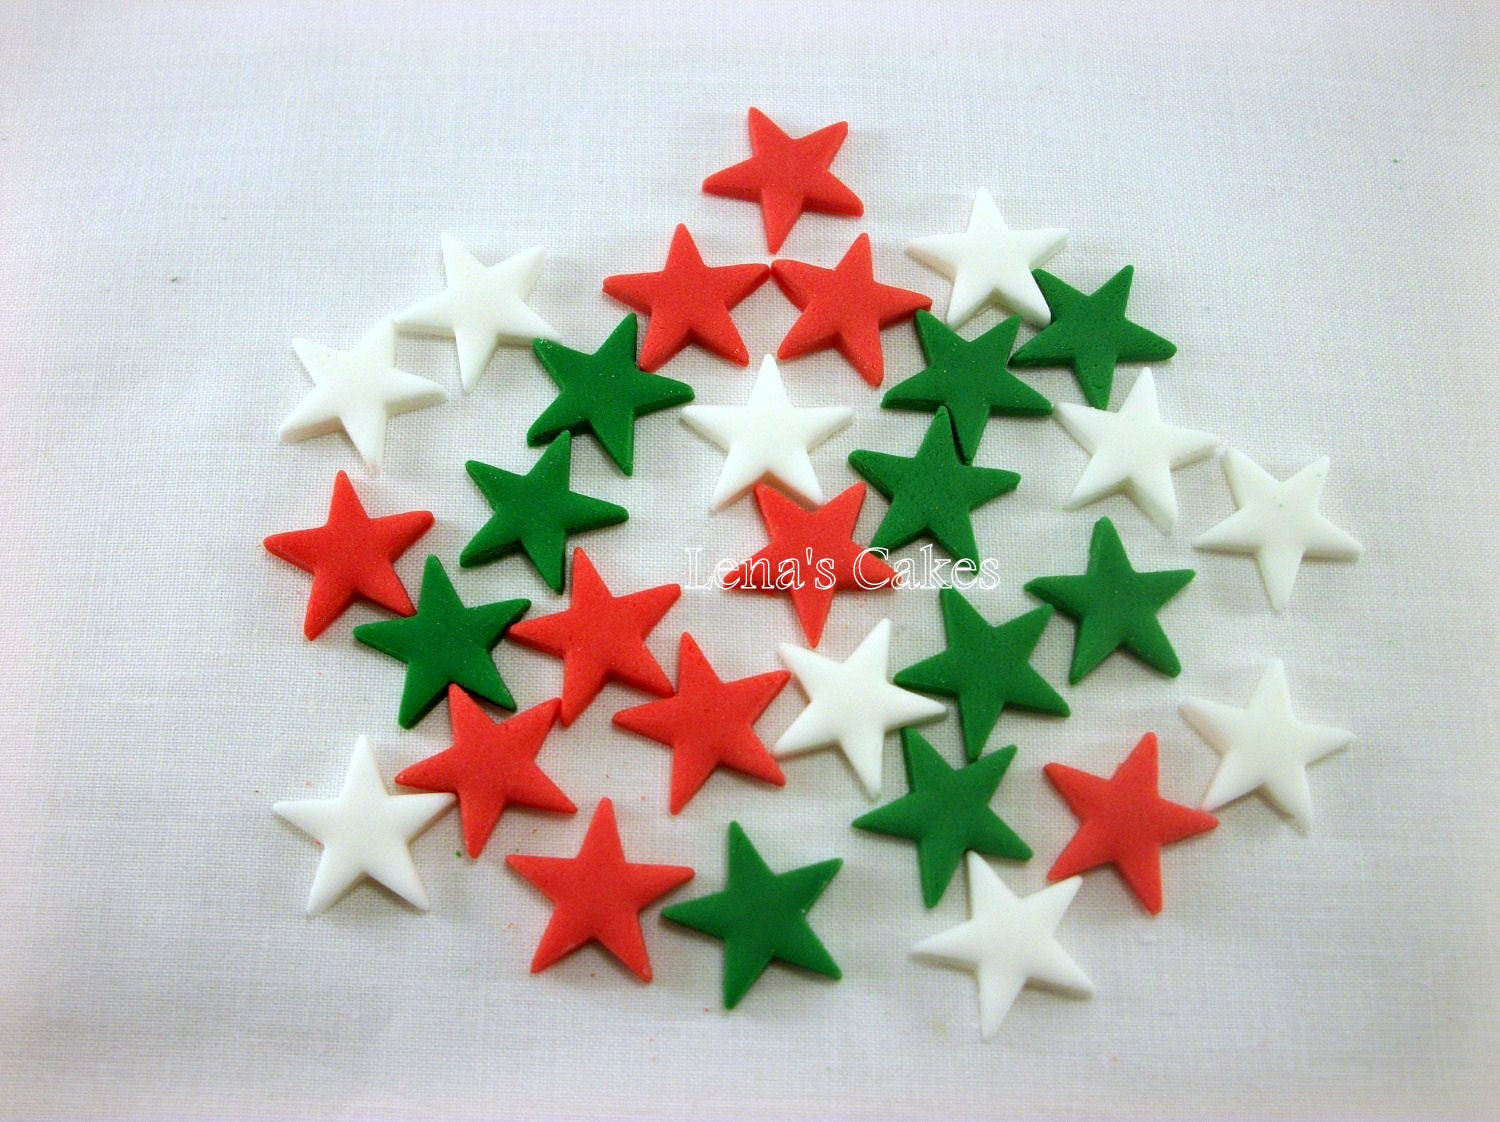 Christmas Cake Decoration With Stars : 96 pcs Christmas Fondant Stars Christmas Cake Cupcake Fondant